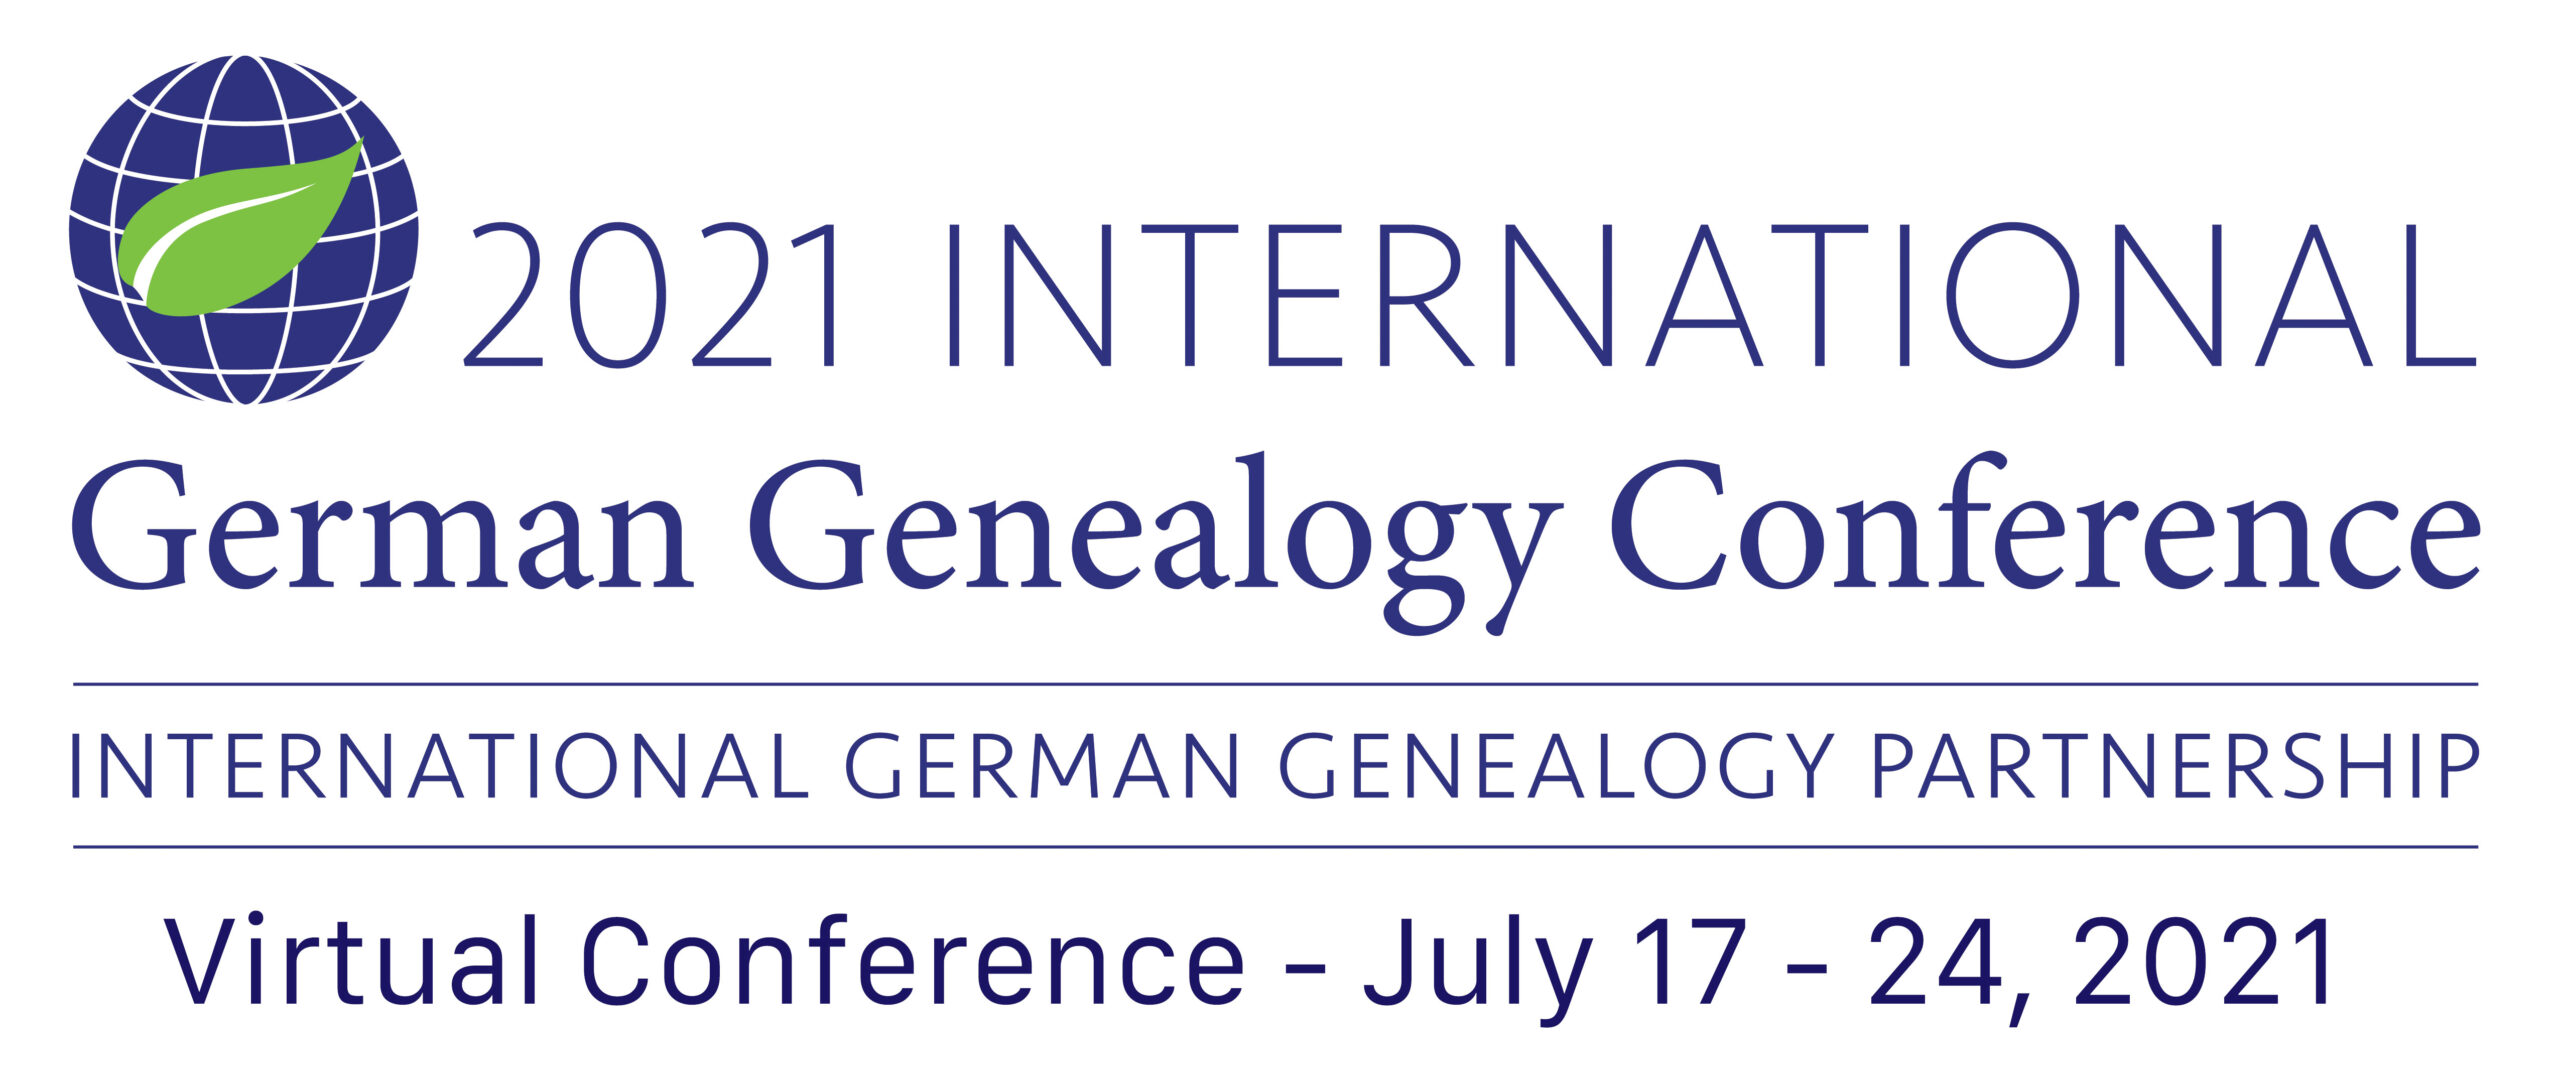 International German Genealogy